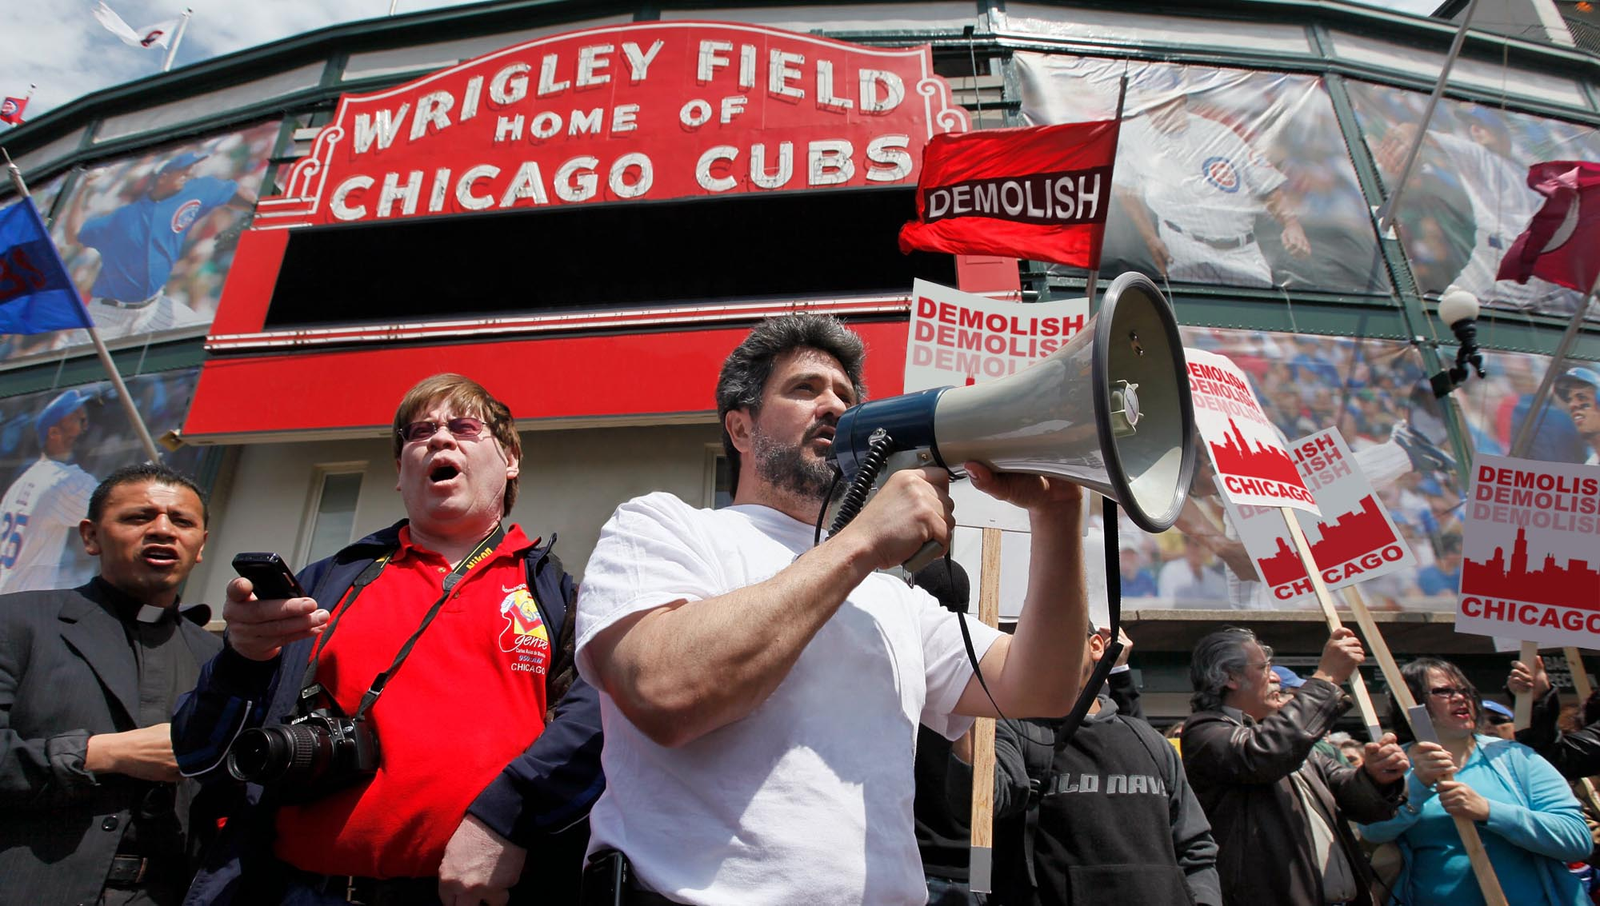 Wrigley Field Supporters Propose Tearing Down Rest Of Chicago